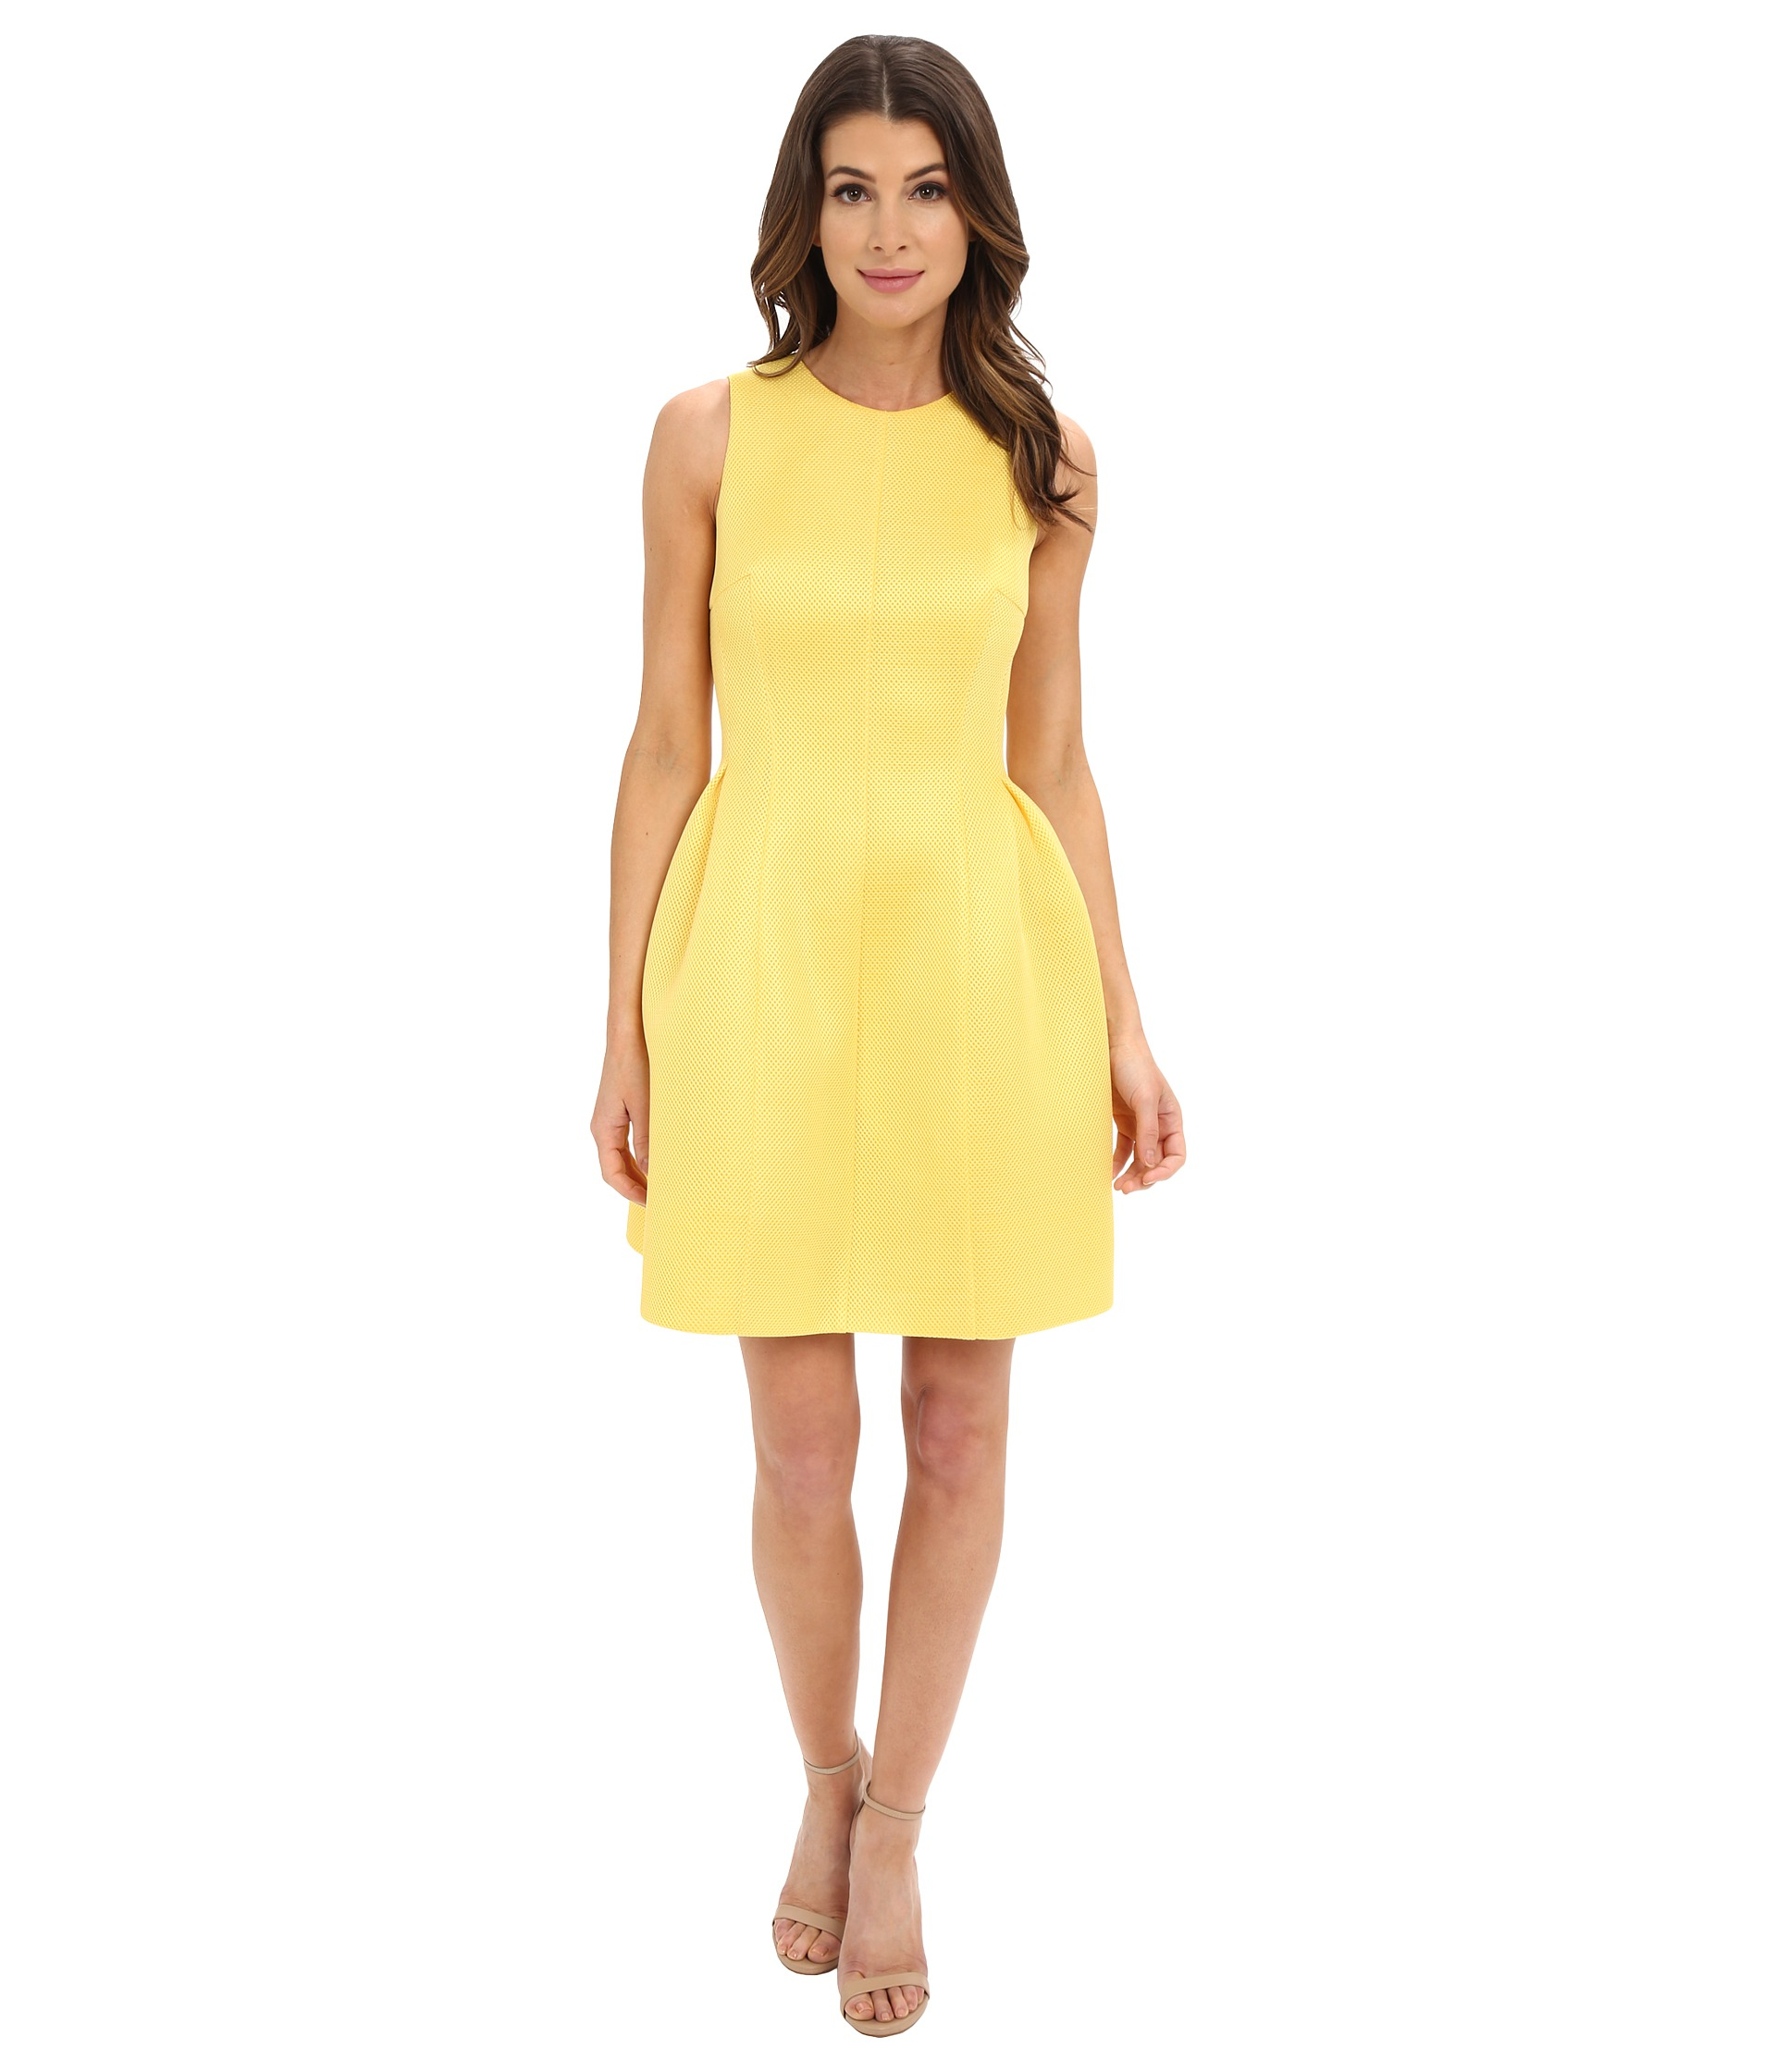 e1d49057b38 Calvin Klein Fit And Flair Dress Cd6m3110 in Yellow - Lyst